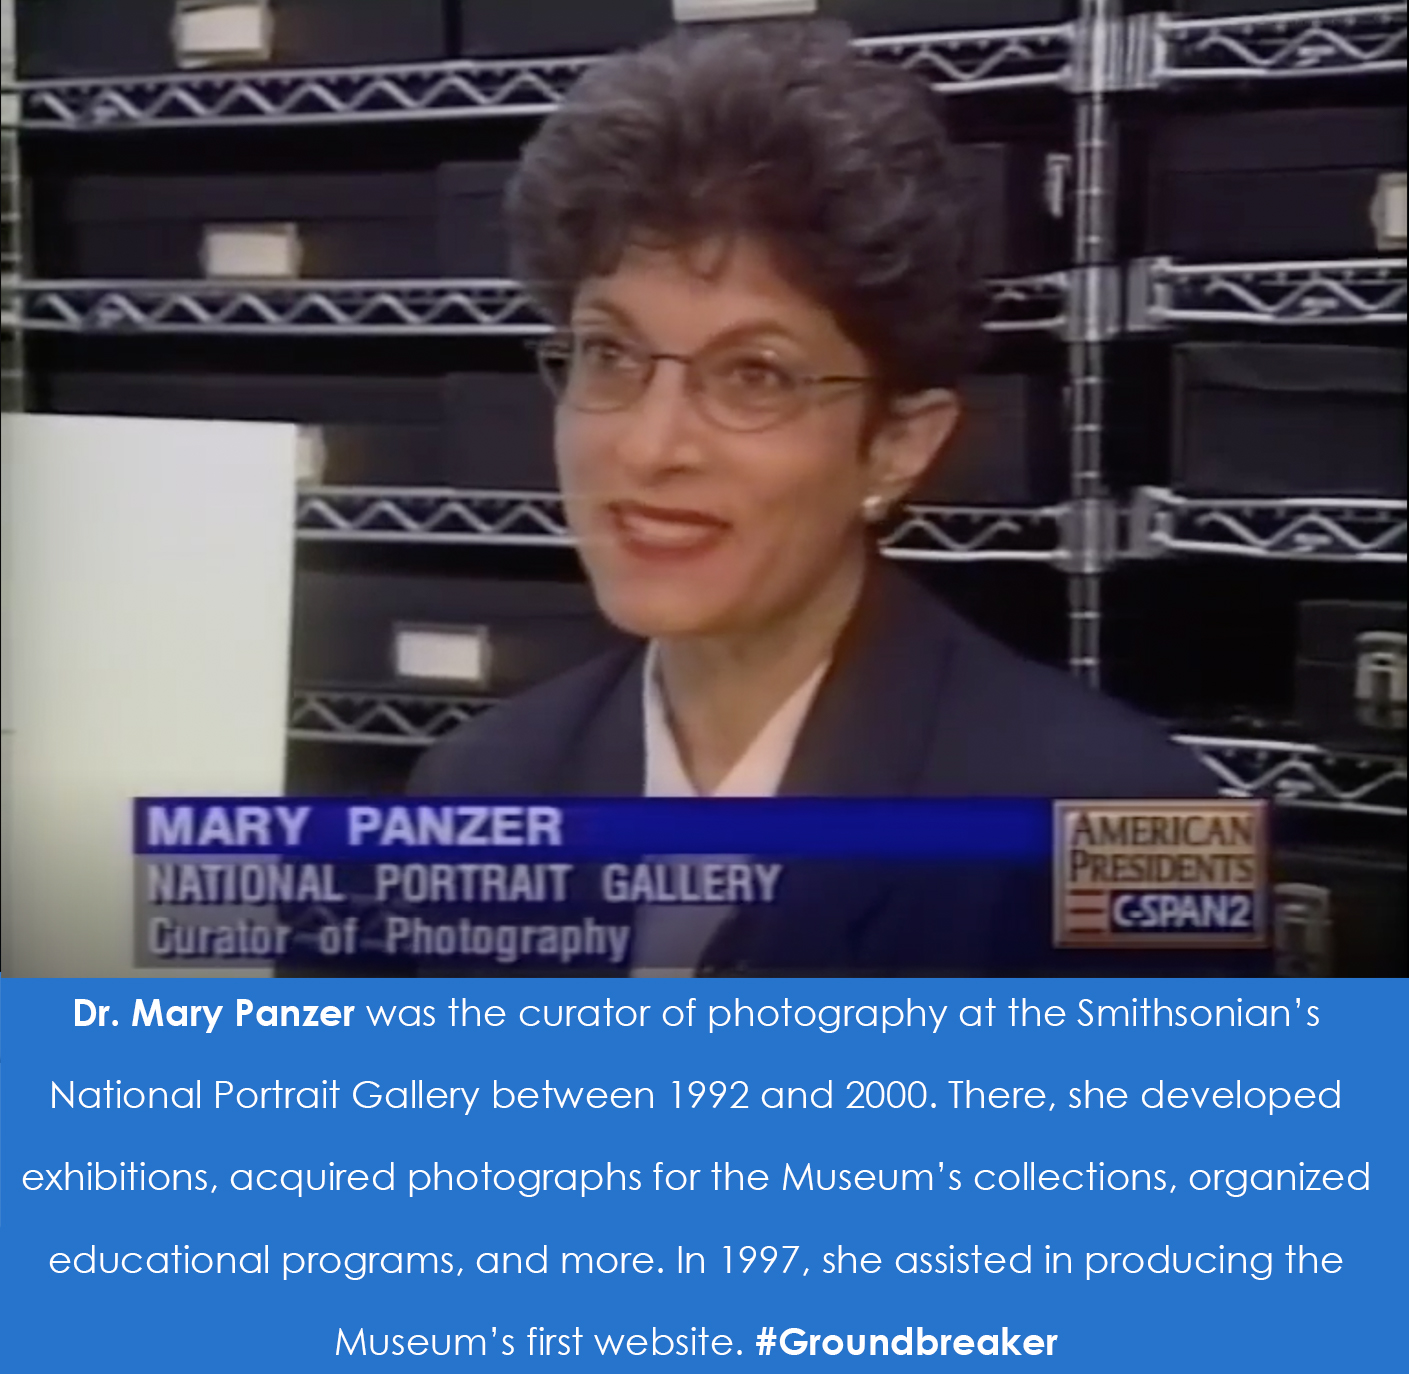 Screenshot of Panzer on C-SPAN when she was a curator at the National Portrait Gallery.